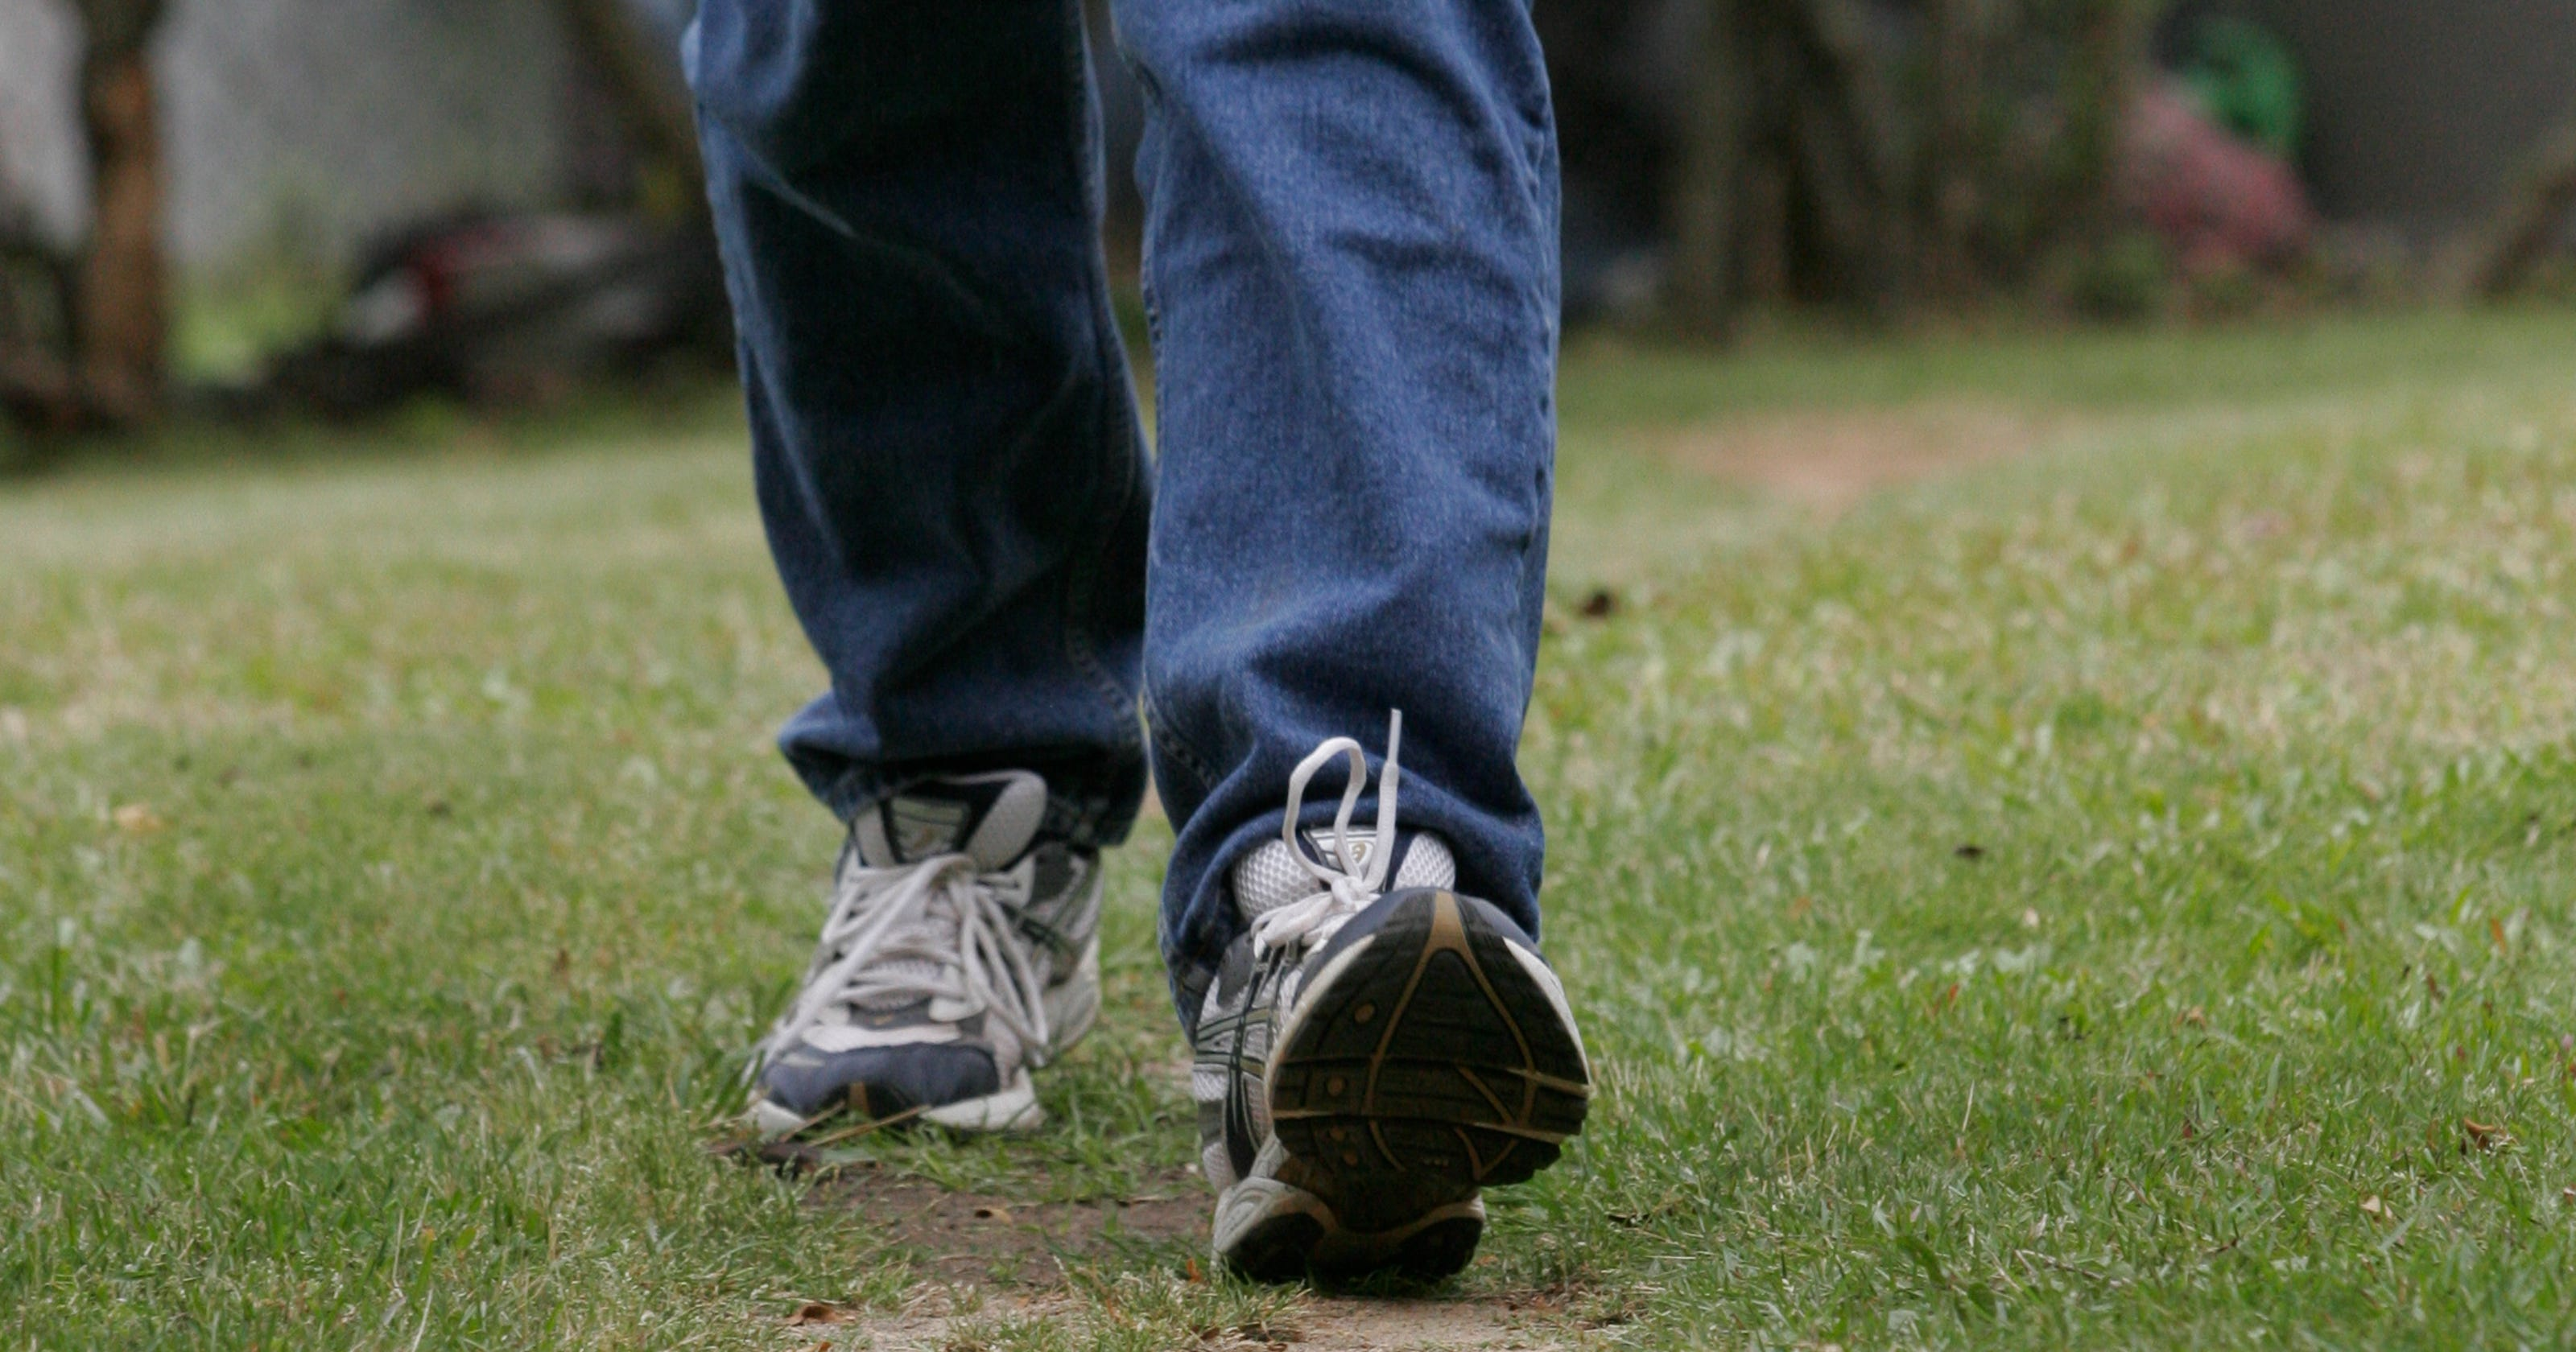 Walking can be a lifesaver, but many need to pick up pace